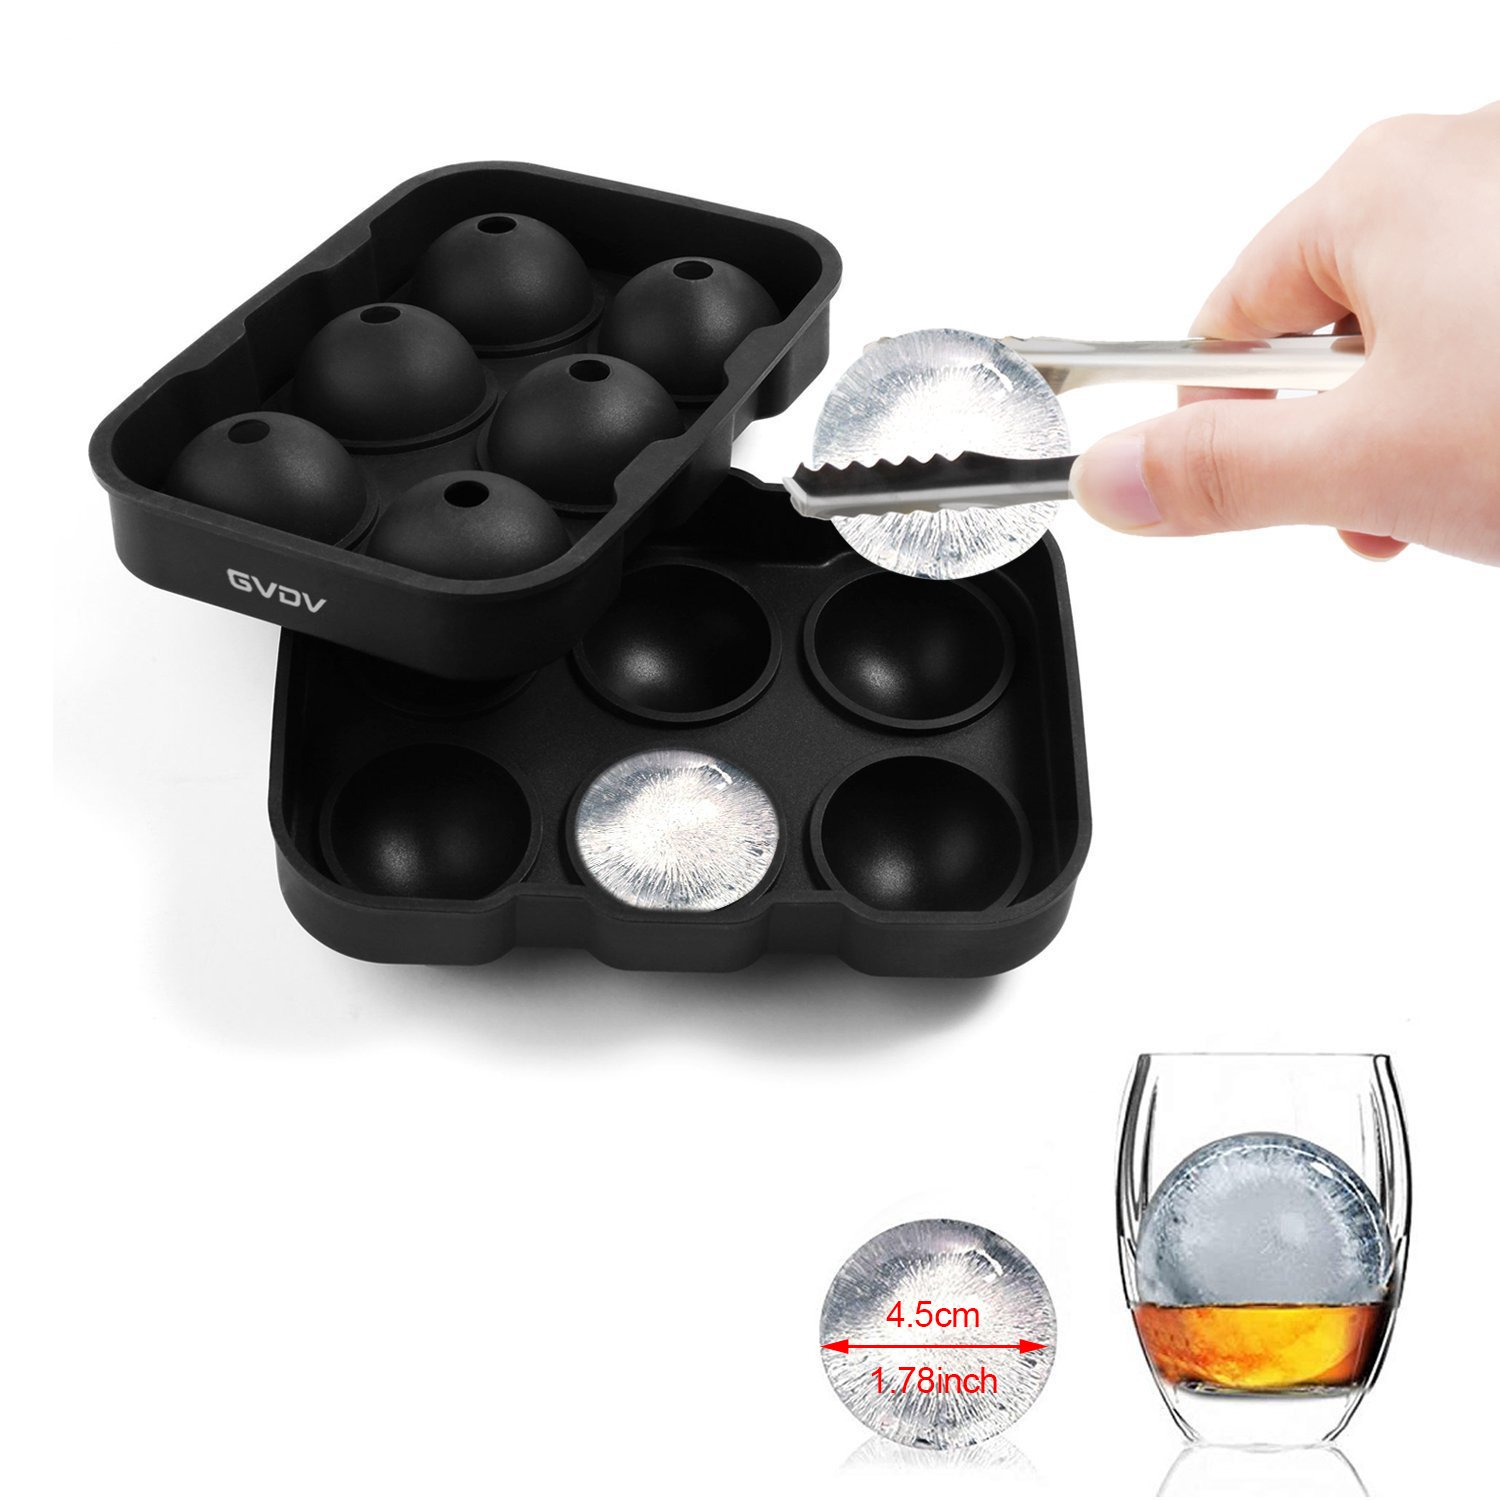 Ice Ball Maker Mold, GVDV Easy Release Flexible Silicone Round Spheres Ice Tray - Molds 6 X 4.5cm Round Whiskey Ice Balls (Black)